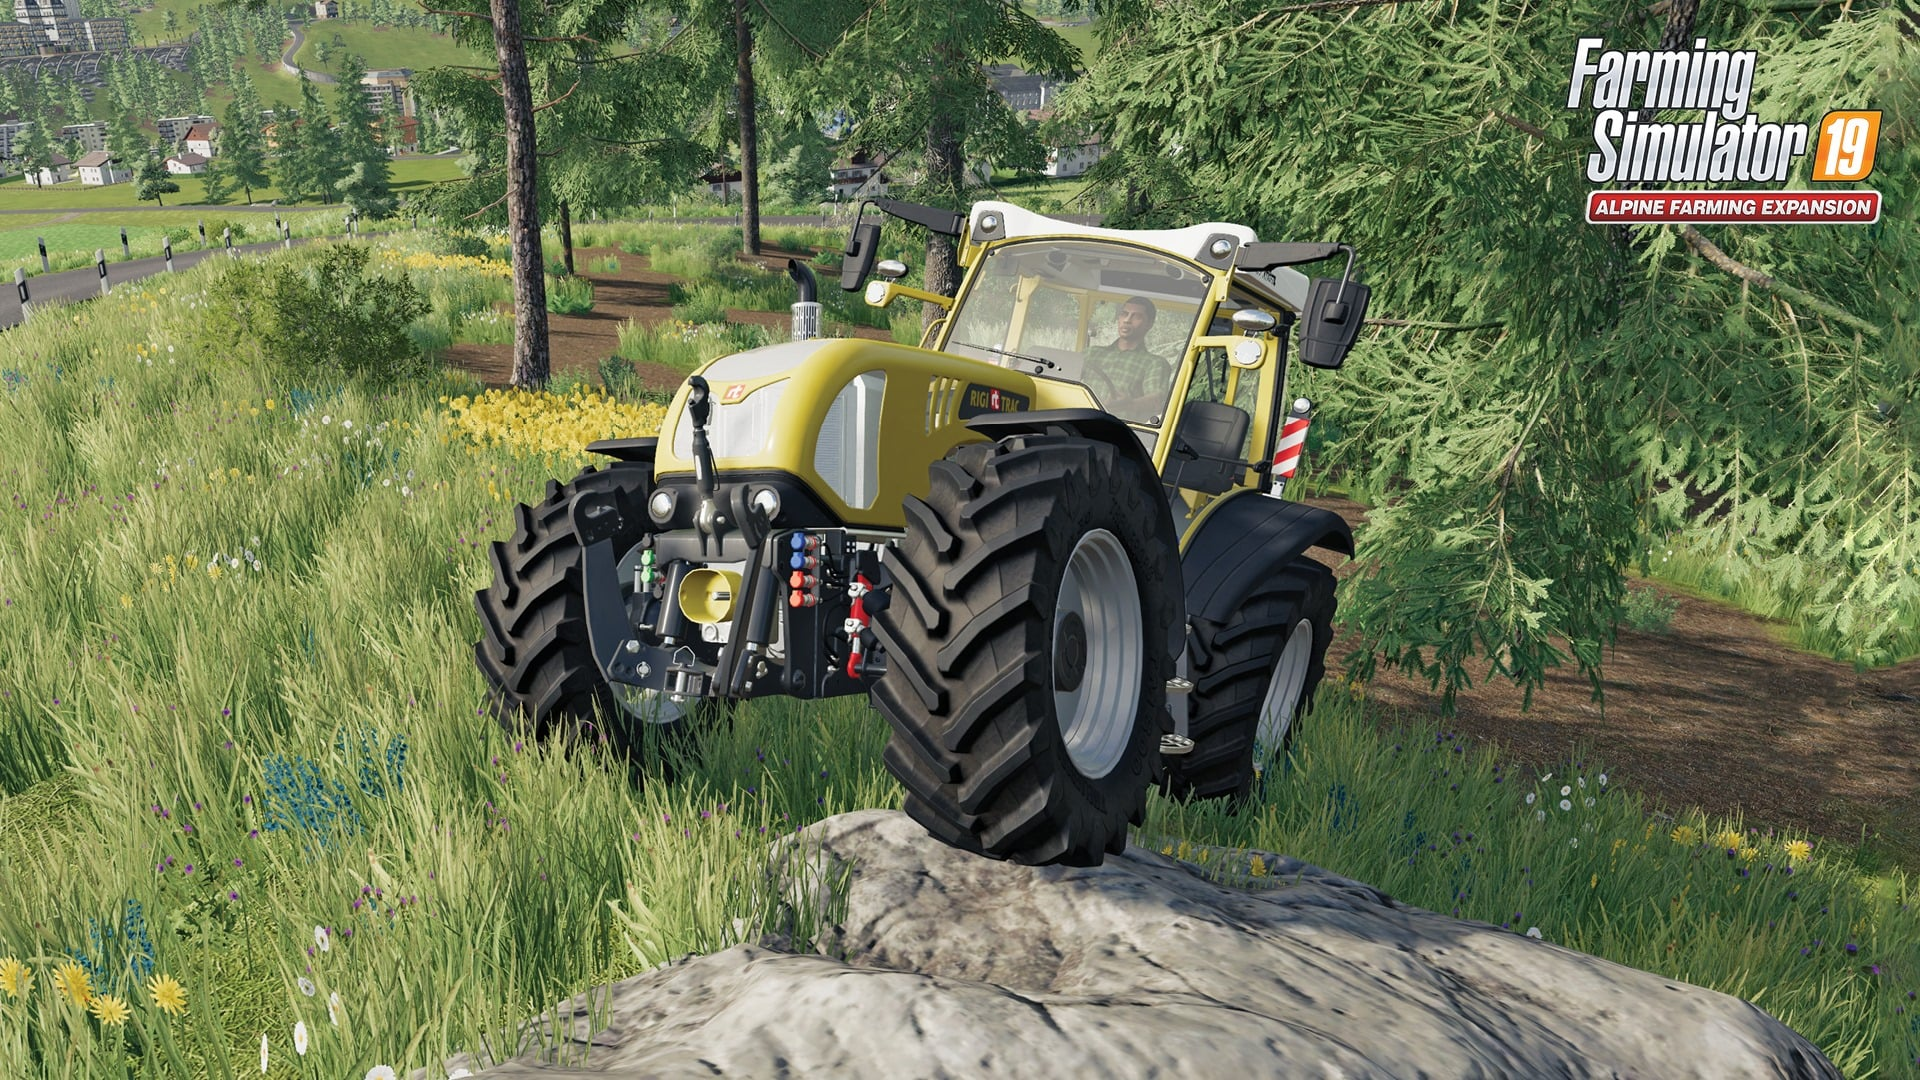 Farming Simulator 19: Alpine Farming Expansion